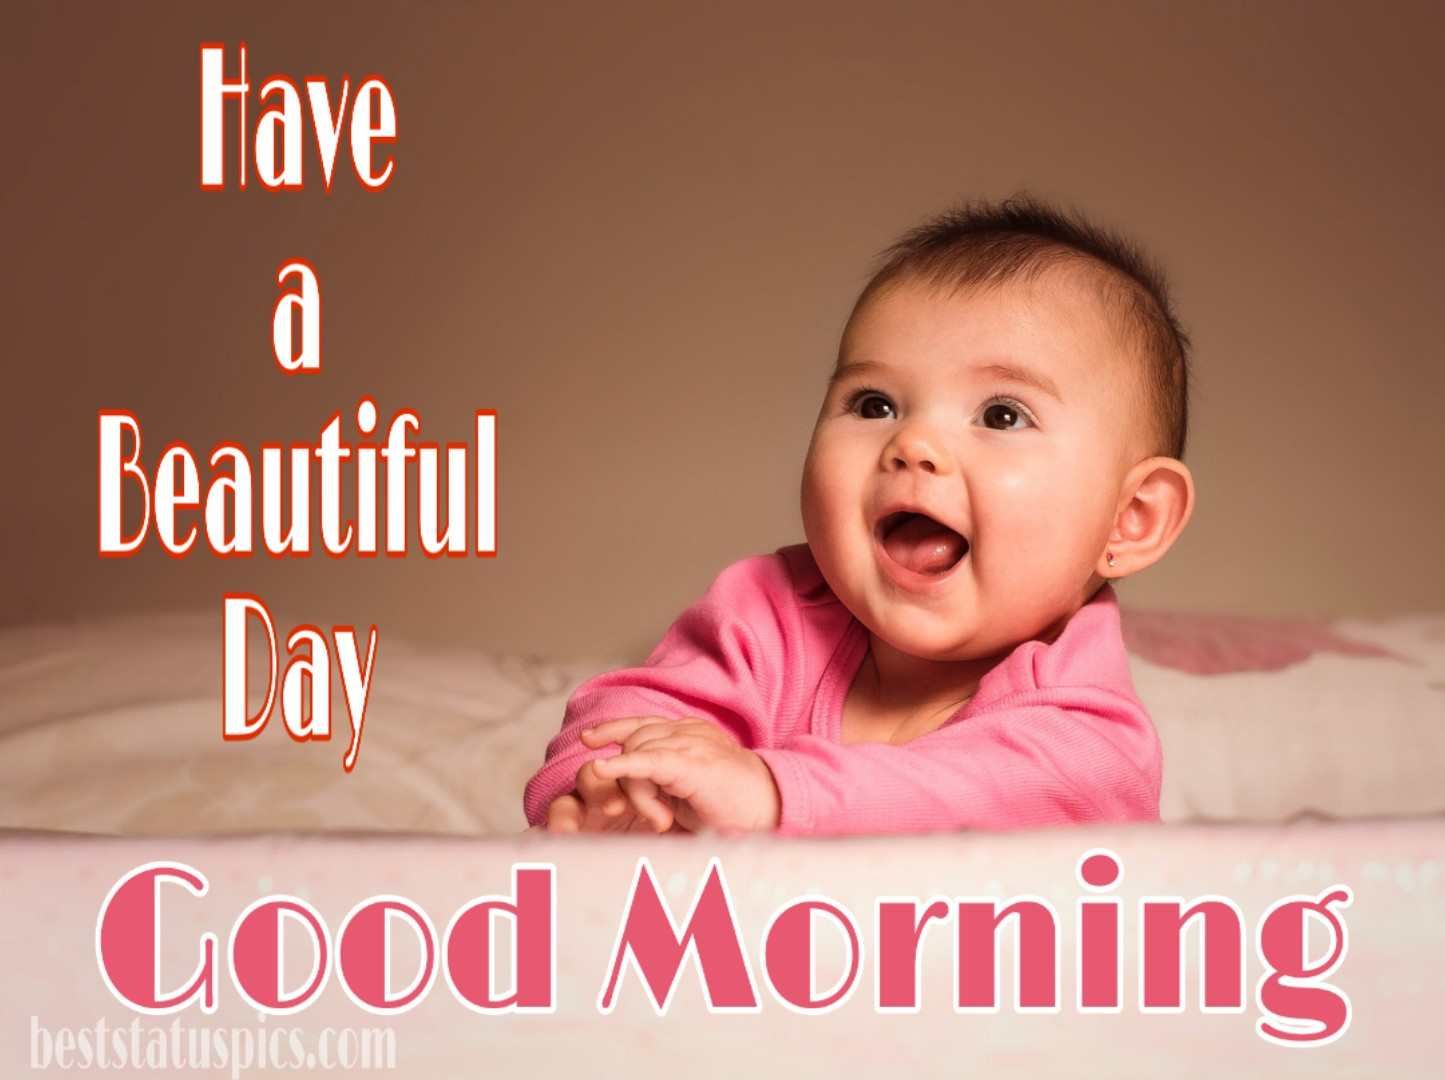 Good morning wishes with cute baby photo